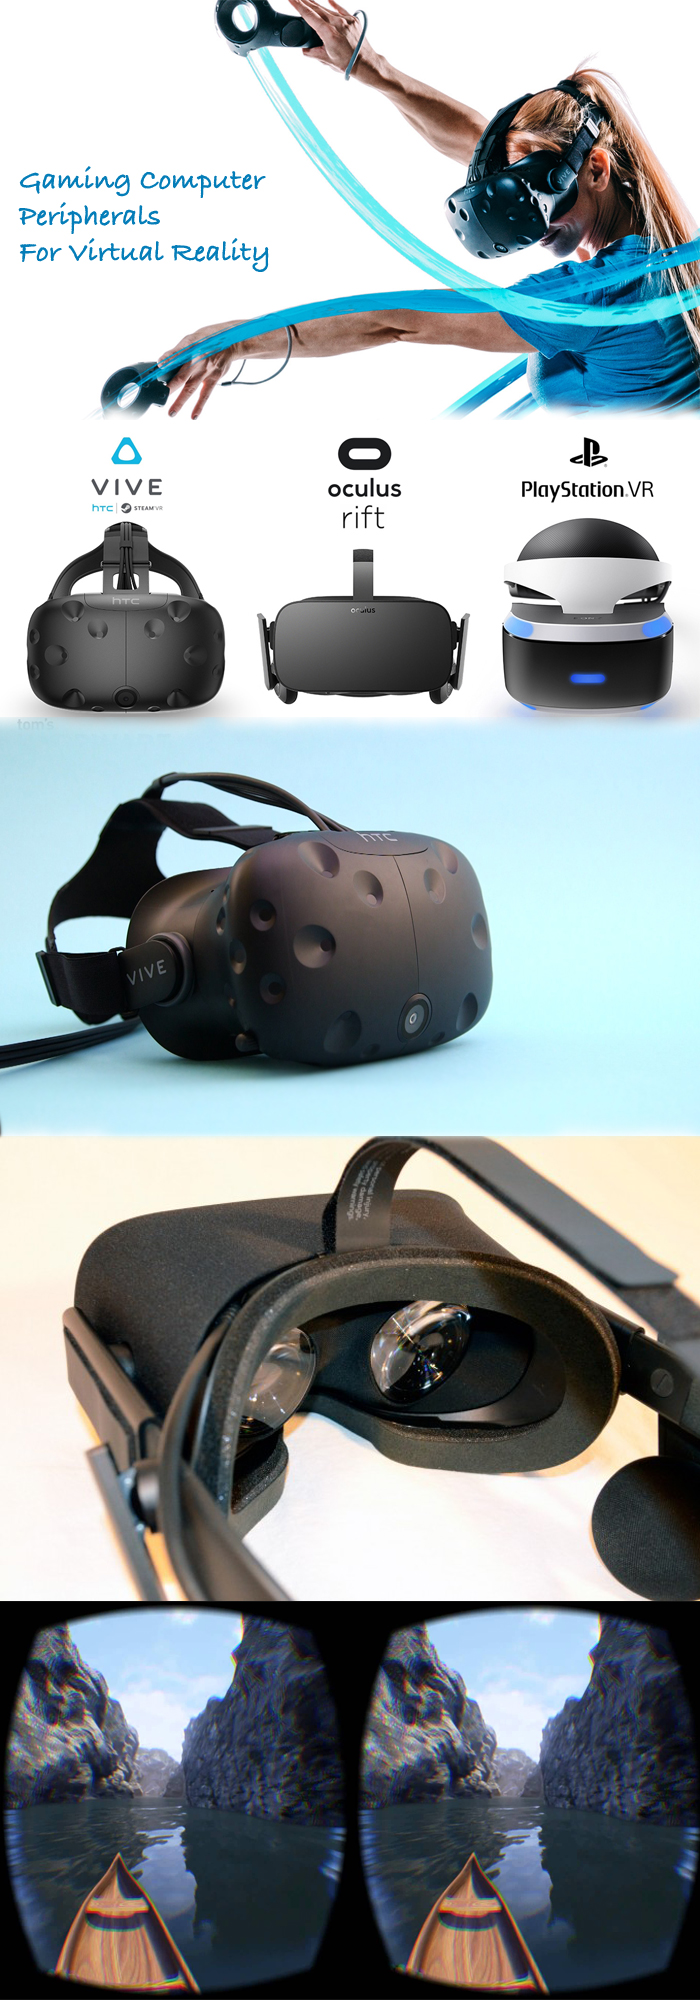 Gaming-Computer-Peripherals-For-Virtual-Reality